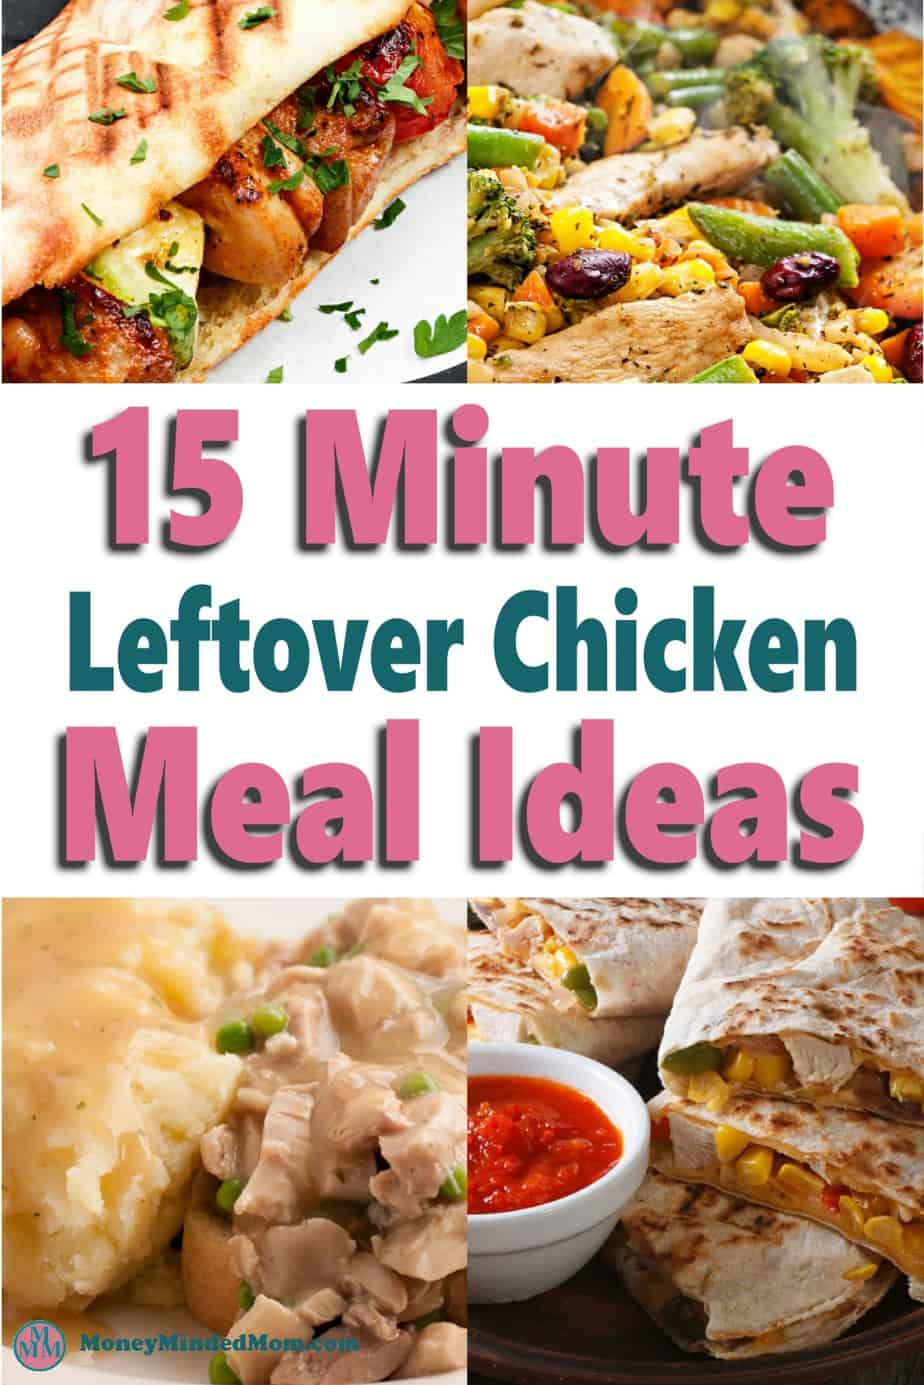 15 Minute Leftover Chicken Meal Ideas